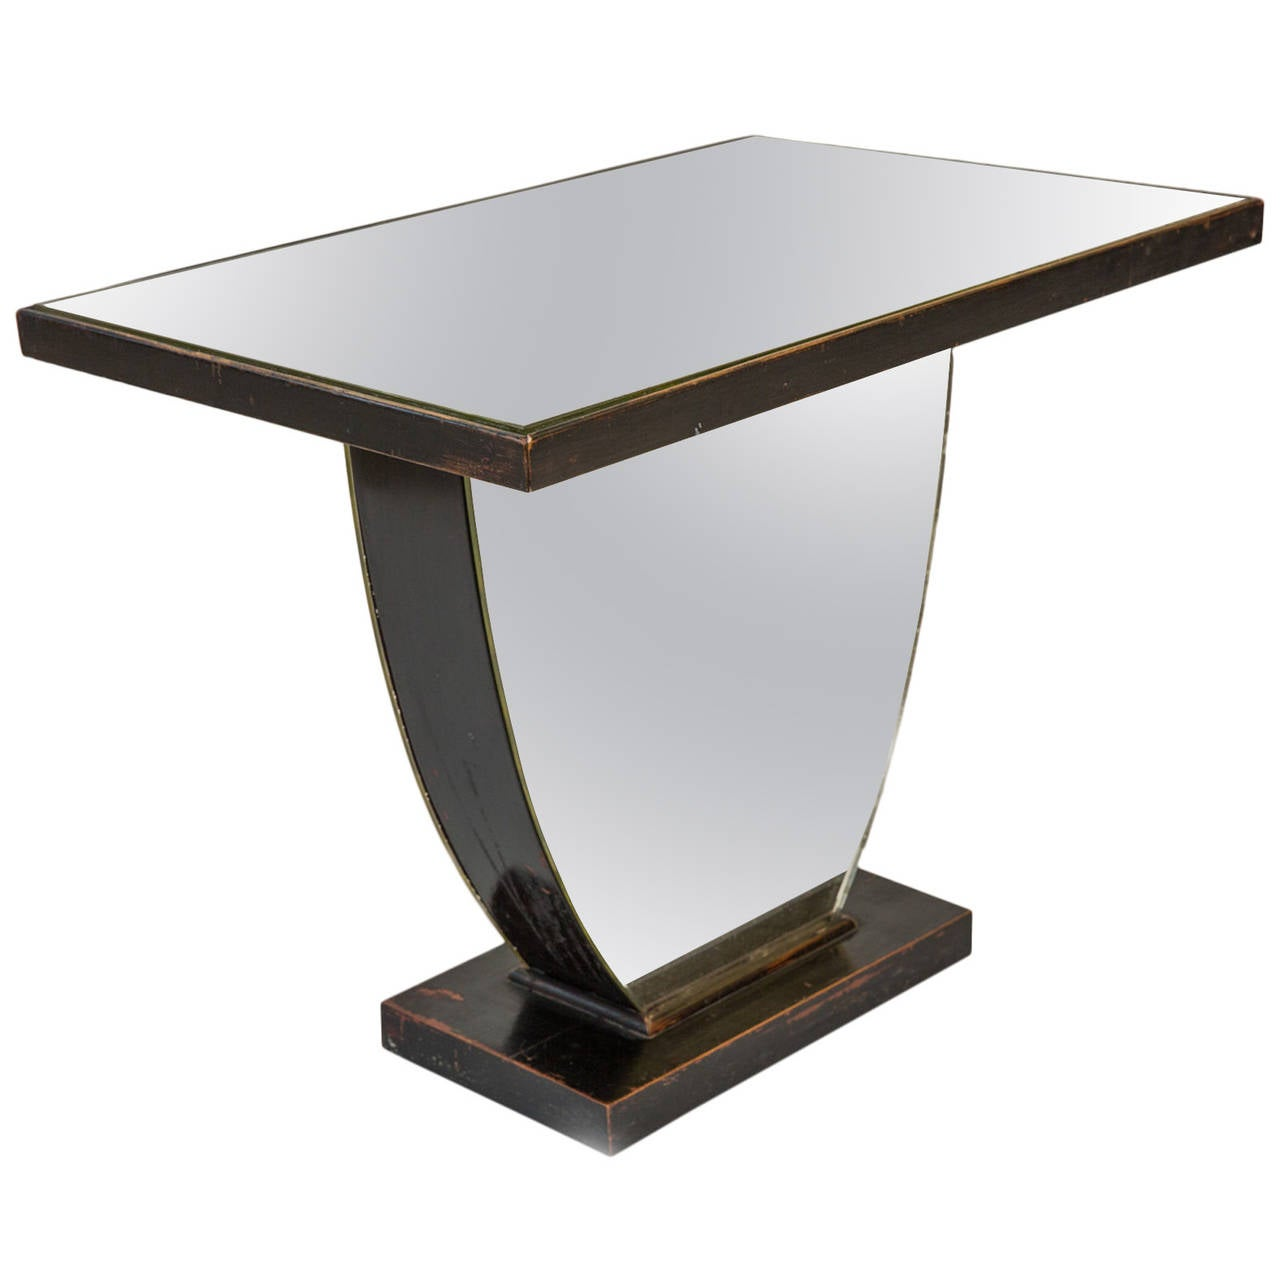 french art deco mirrored side table at 1stdibs. Black Bedroom Furniture Sets. Home Design Ideas